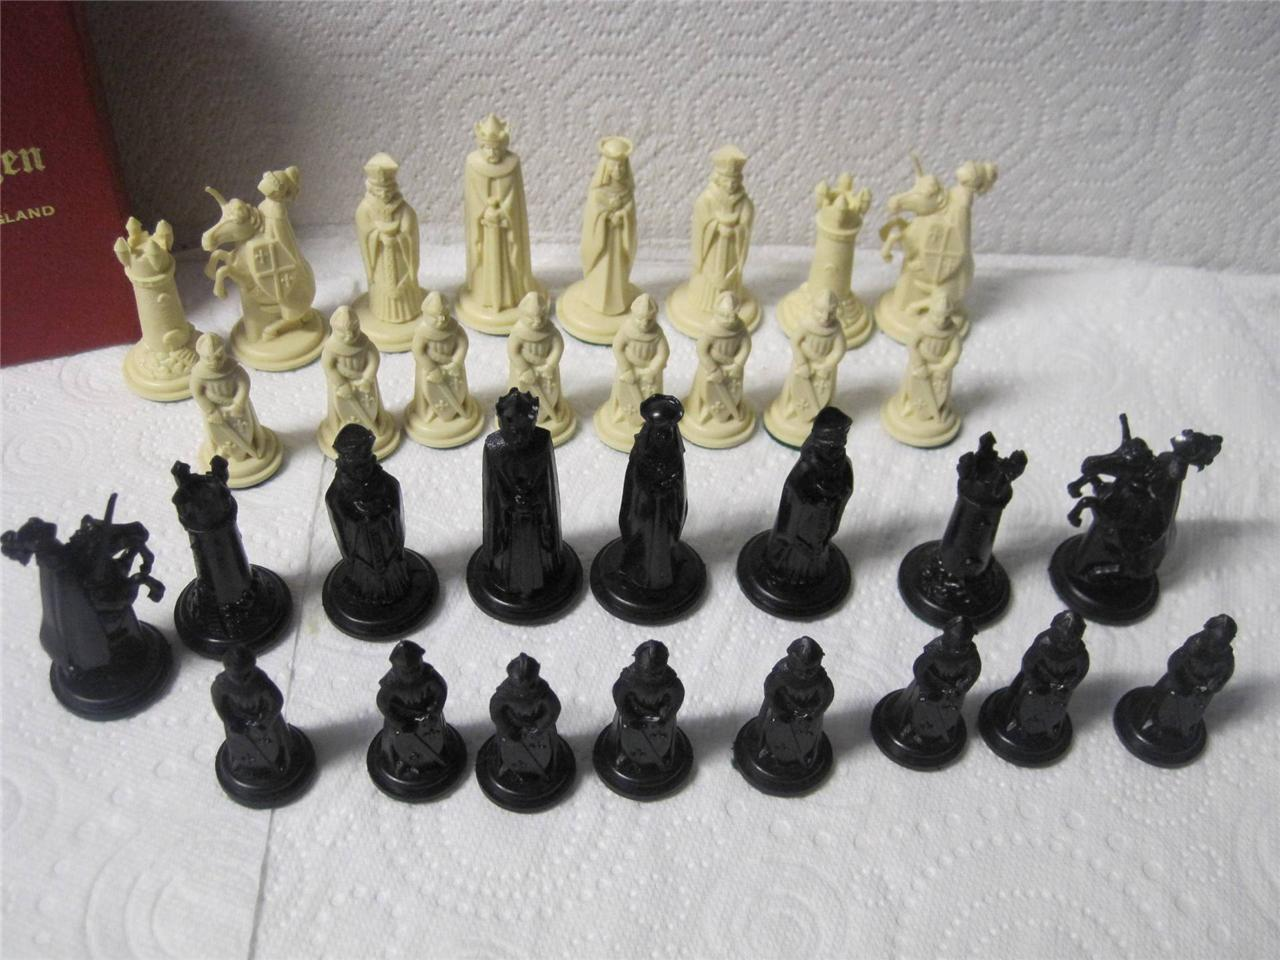 Vintage crescent medieval chessmen chess set weighted pieces ebay - Medieval times chess set ...